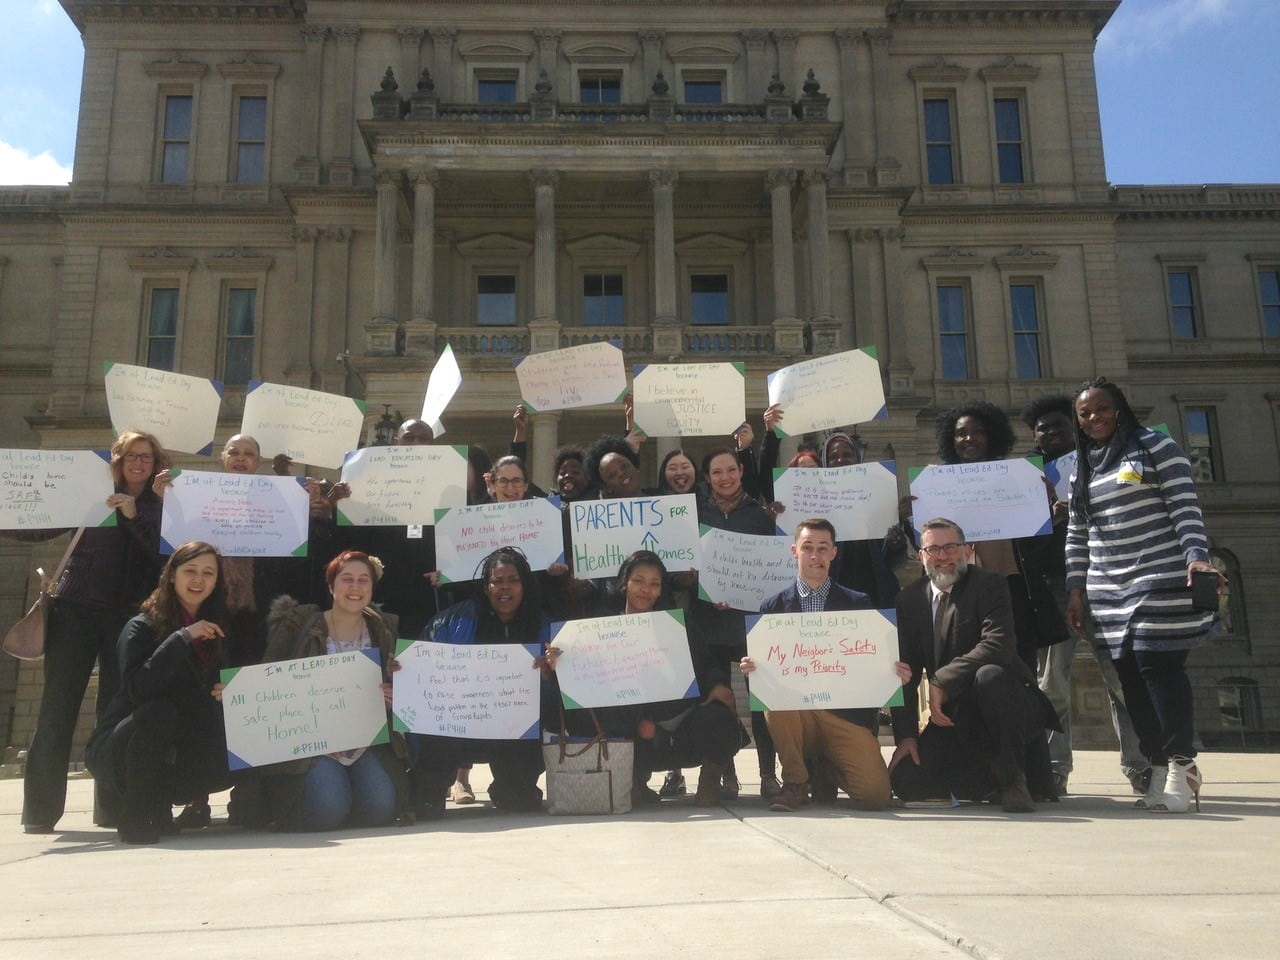 Parents for Healthy Homes at the Michigan State Capitol